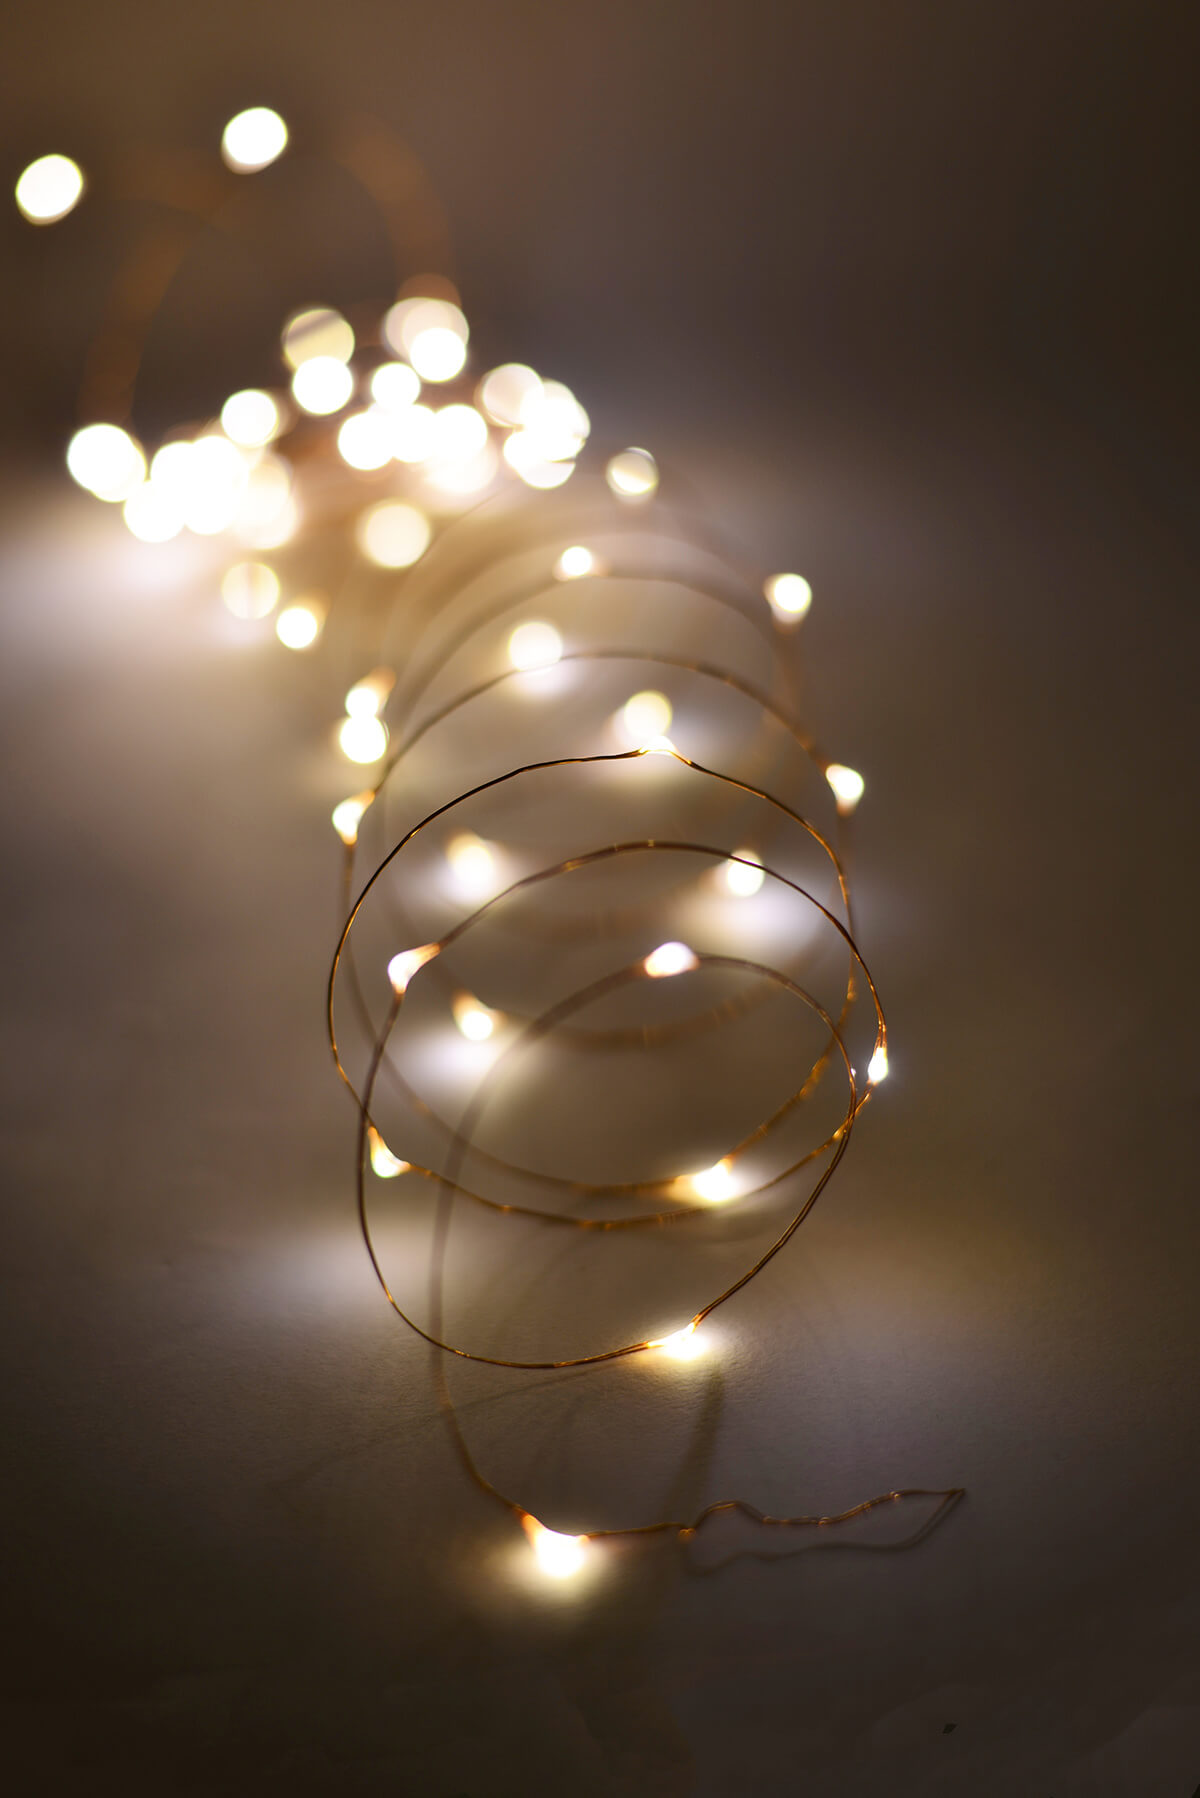 Led String Lights Warm White Outdoor : Outdoor Fairy Lights 20 FT Battery Op. 60 Warm White LED Light Strings Copper Wire